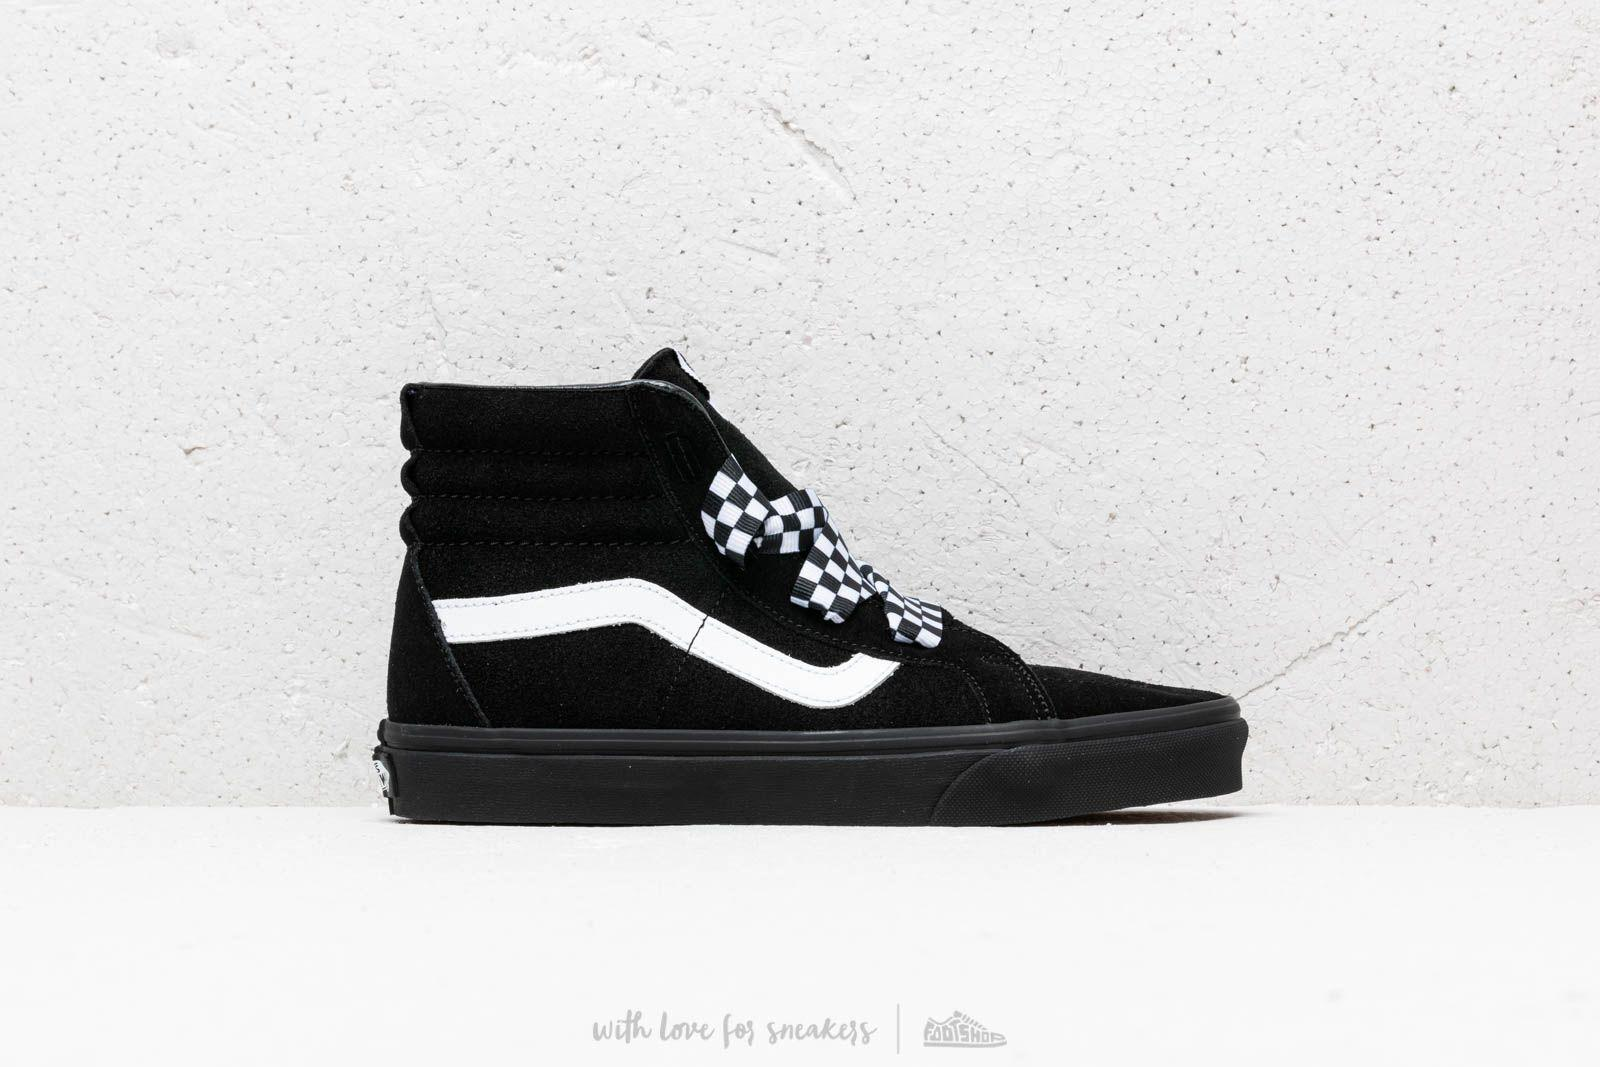 Lyst - Vans Sk8-hi Alt Lace (check Wrap) Black  Black in Black for Men c1f3972ee8ad